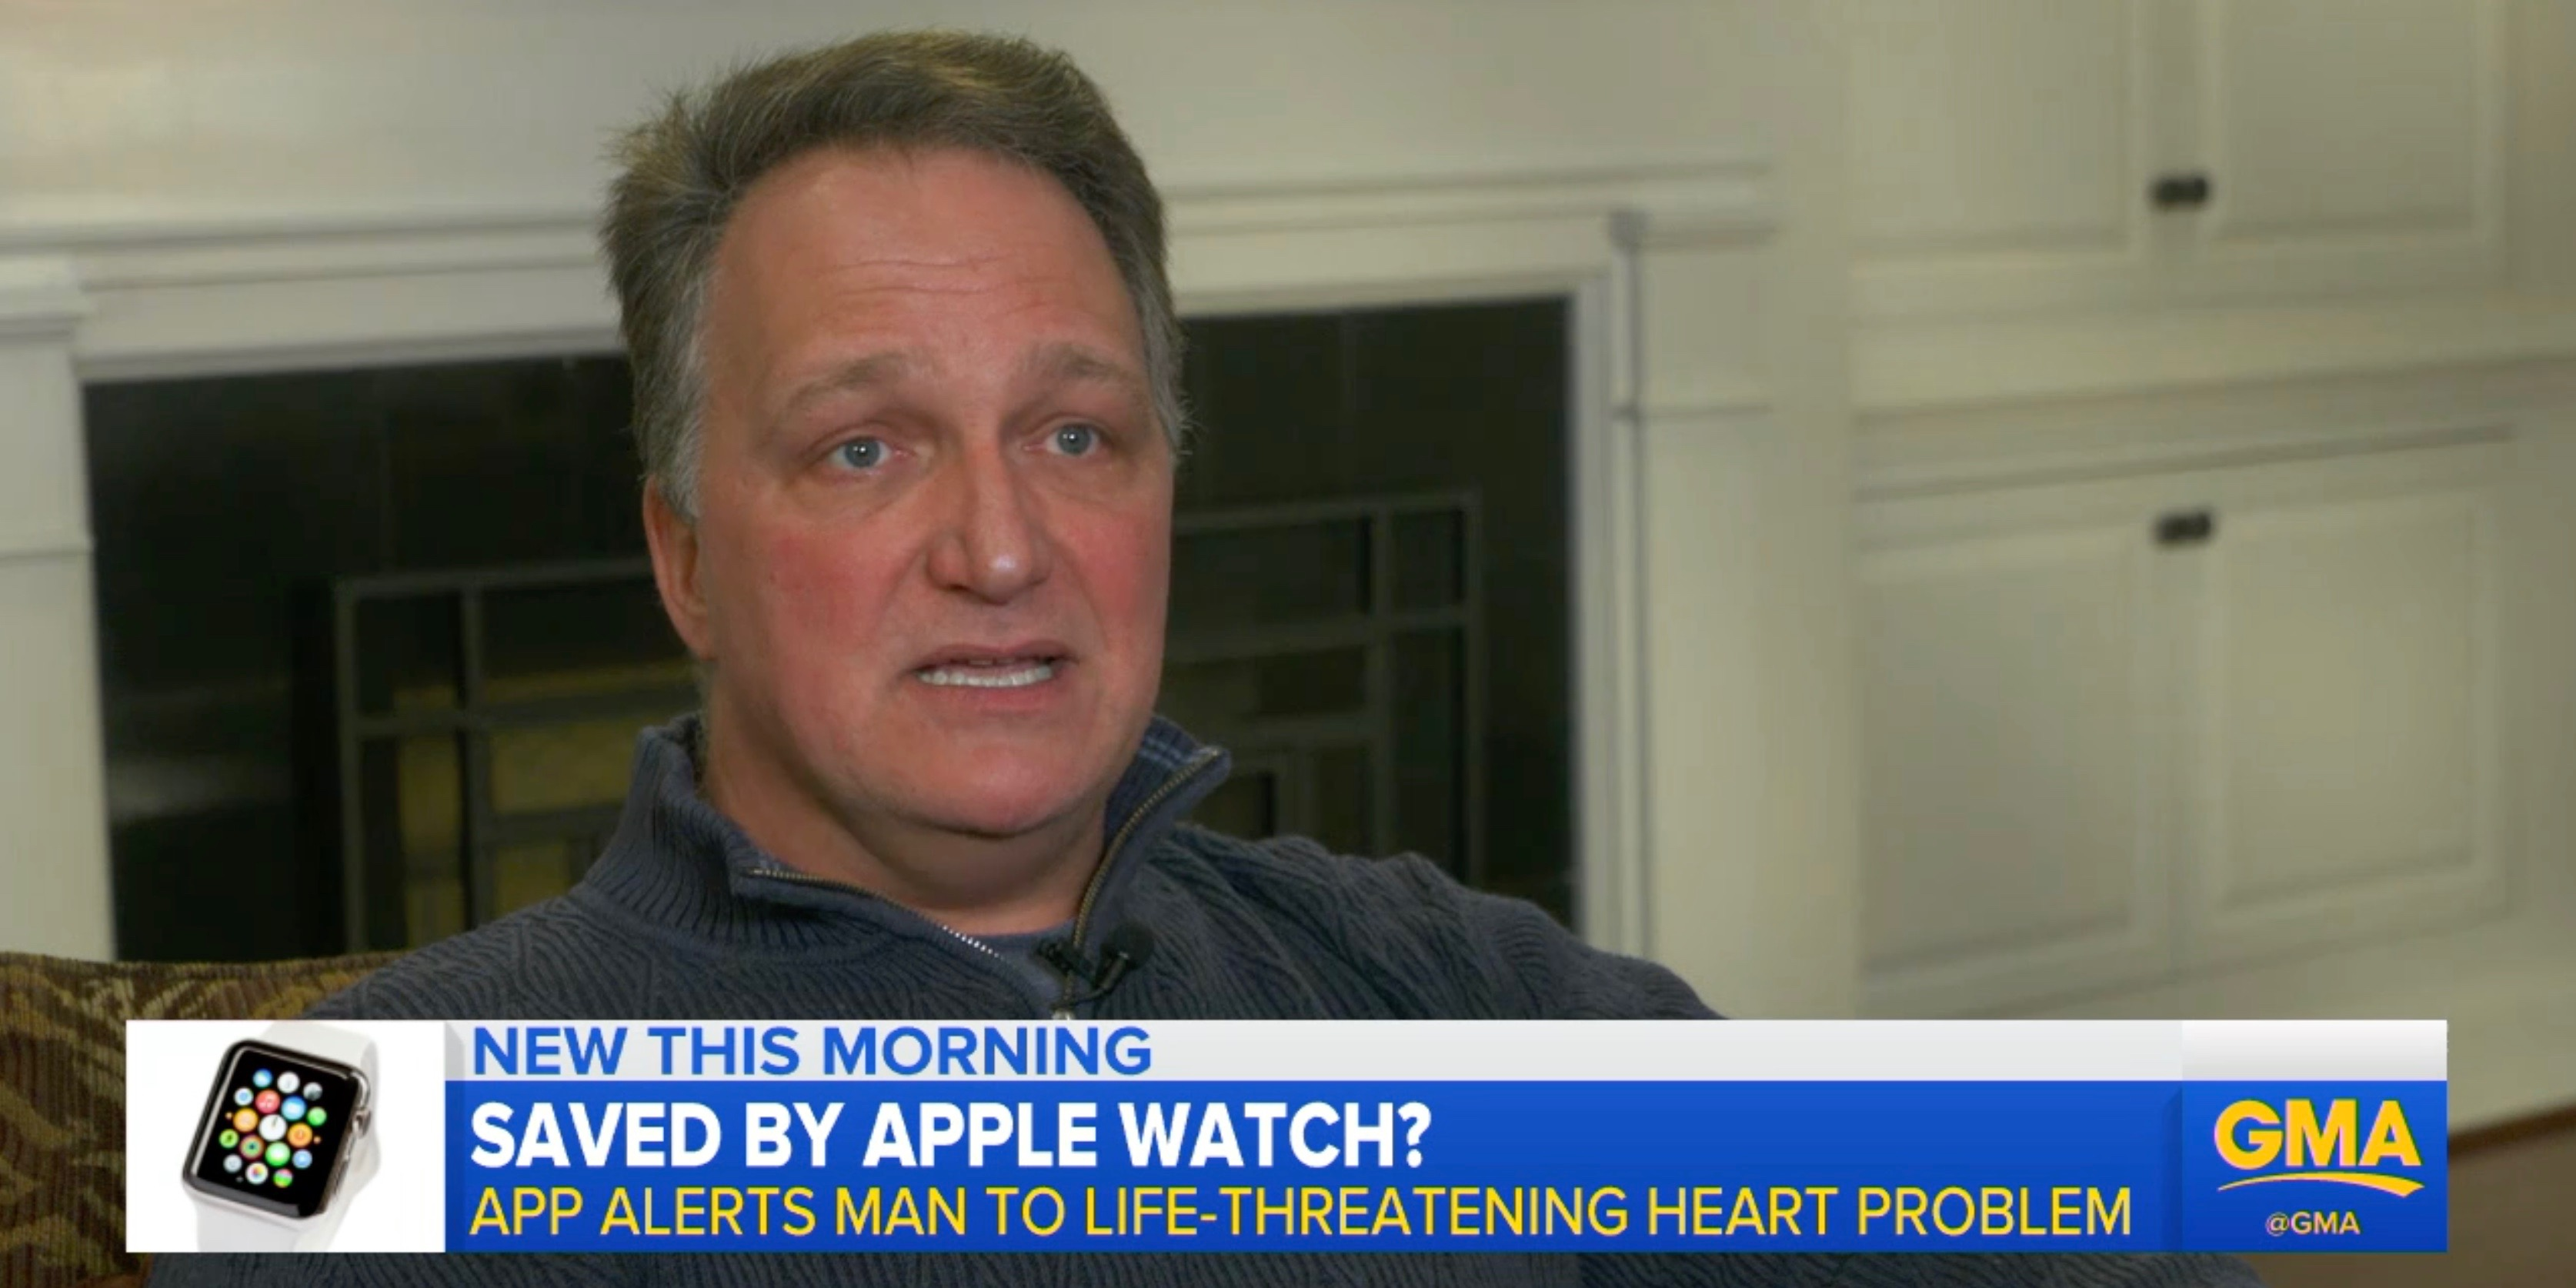 New development in case of Apple Watch customer who discovered heart condition with ECG app, featured on Good Morning America